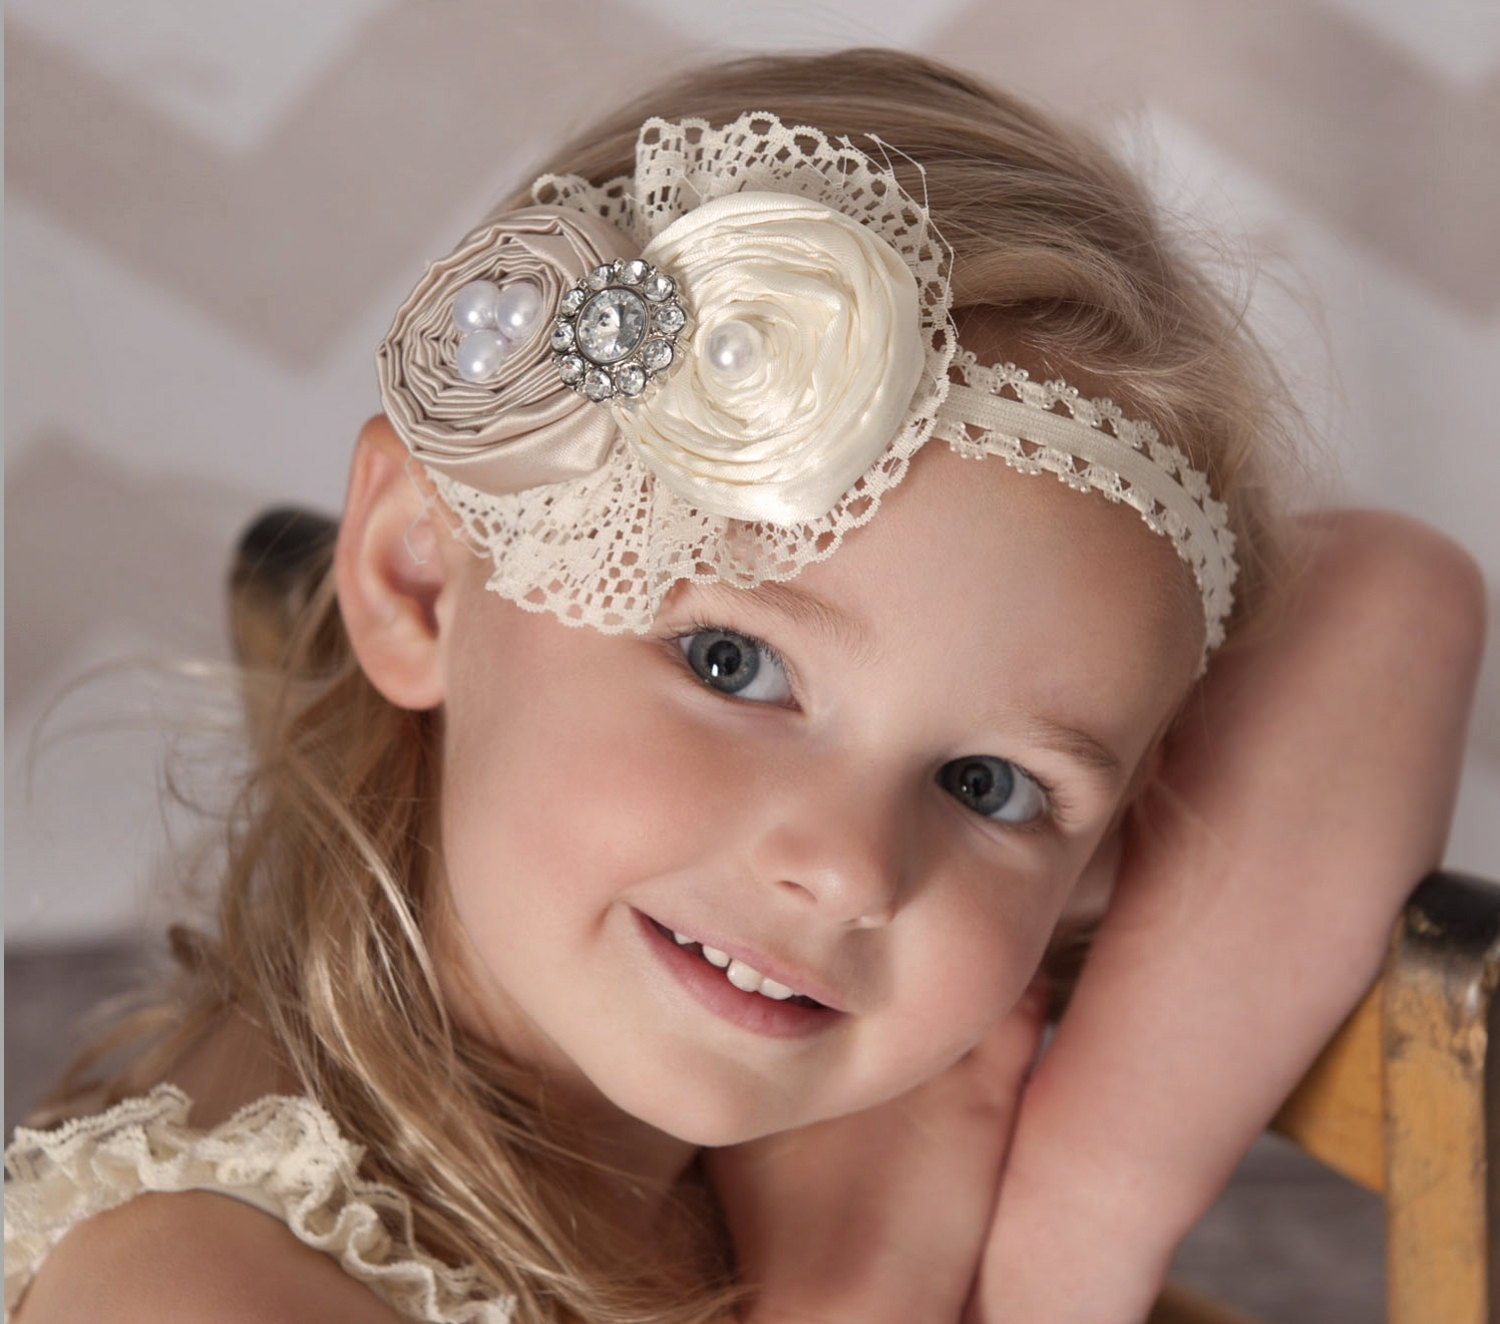 Buy colorful head bows for your beautiful baby girls from needloanbadcredit.cf